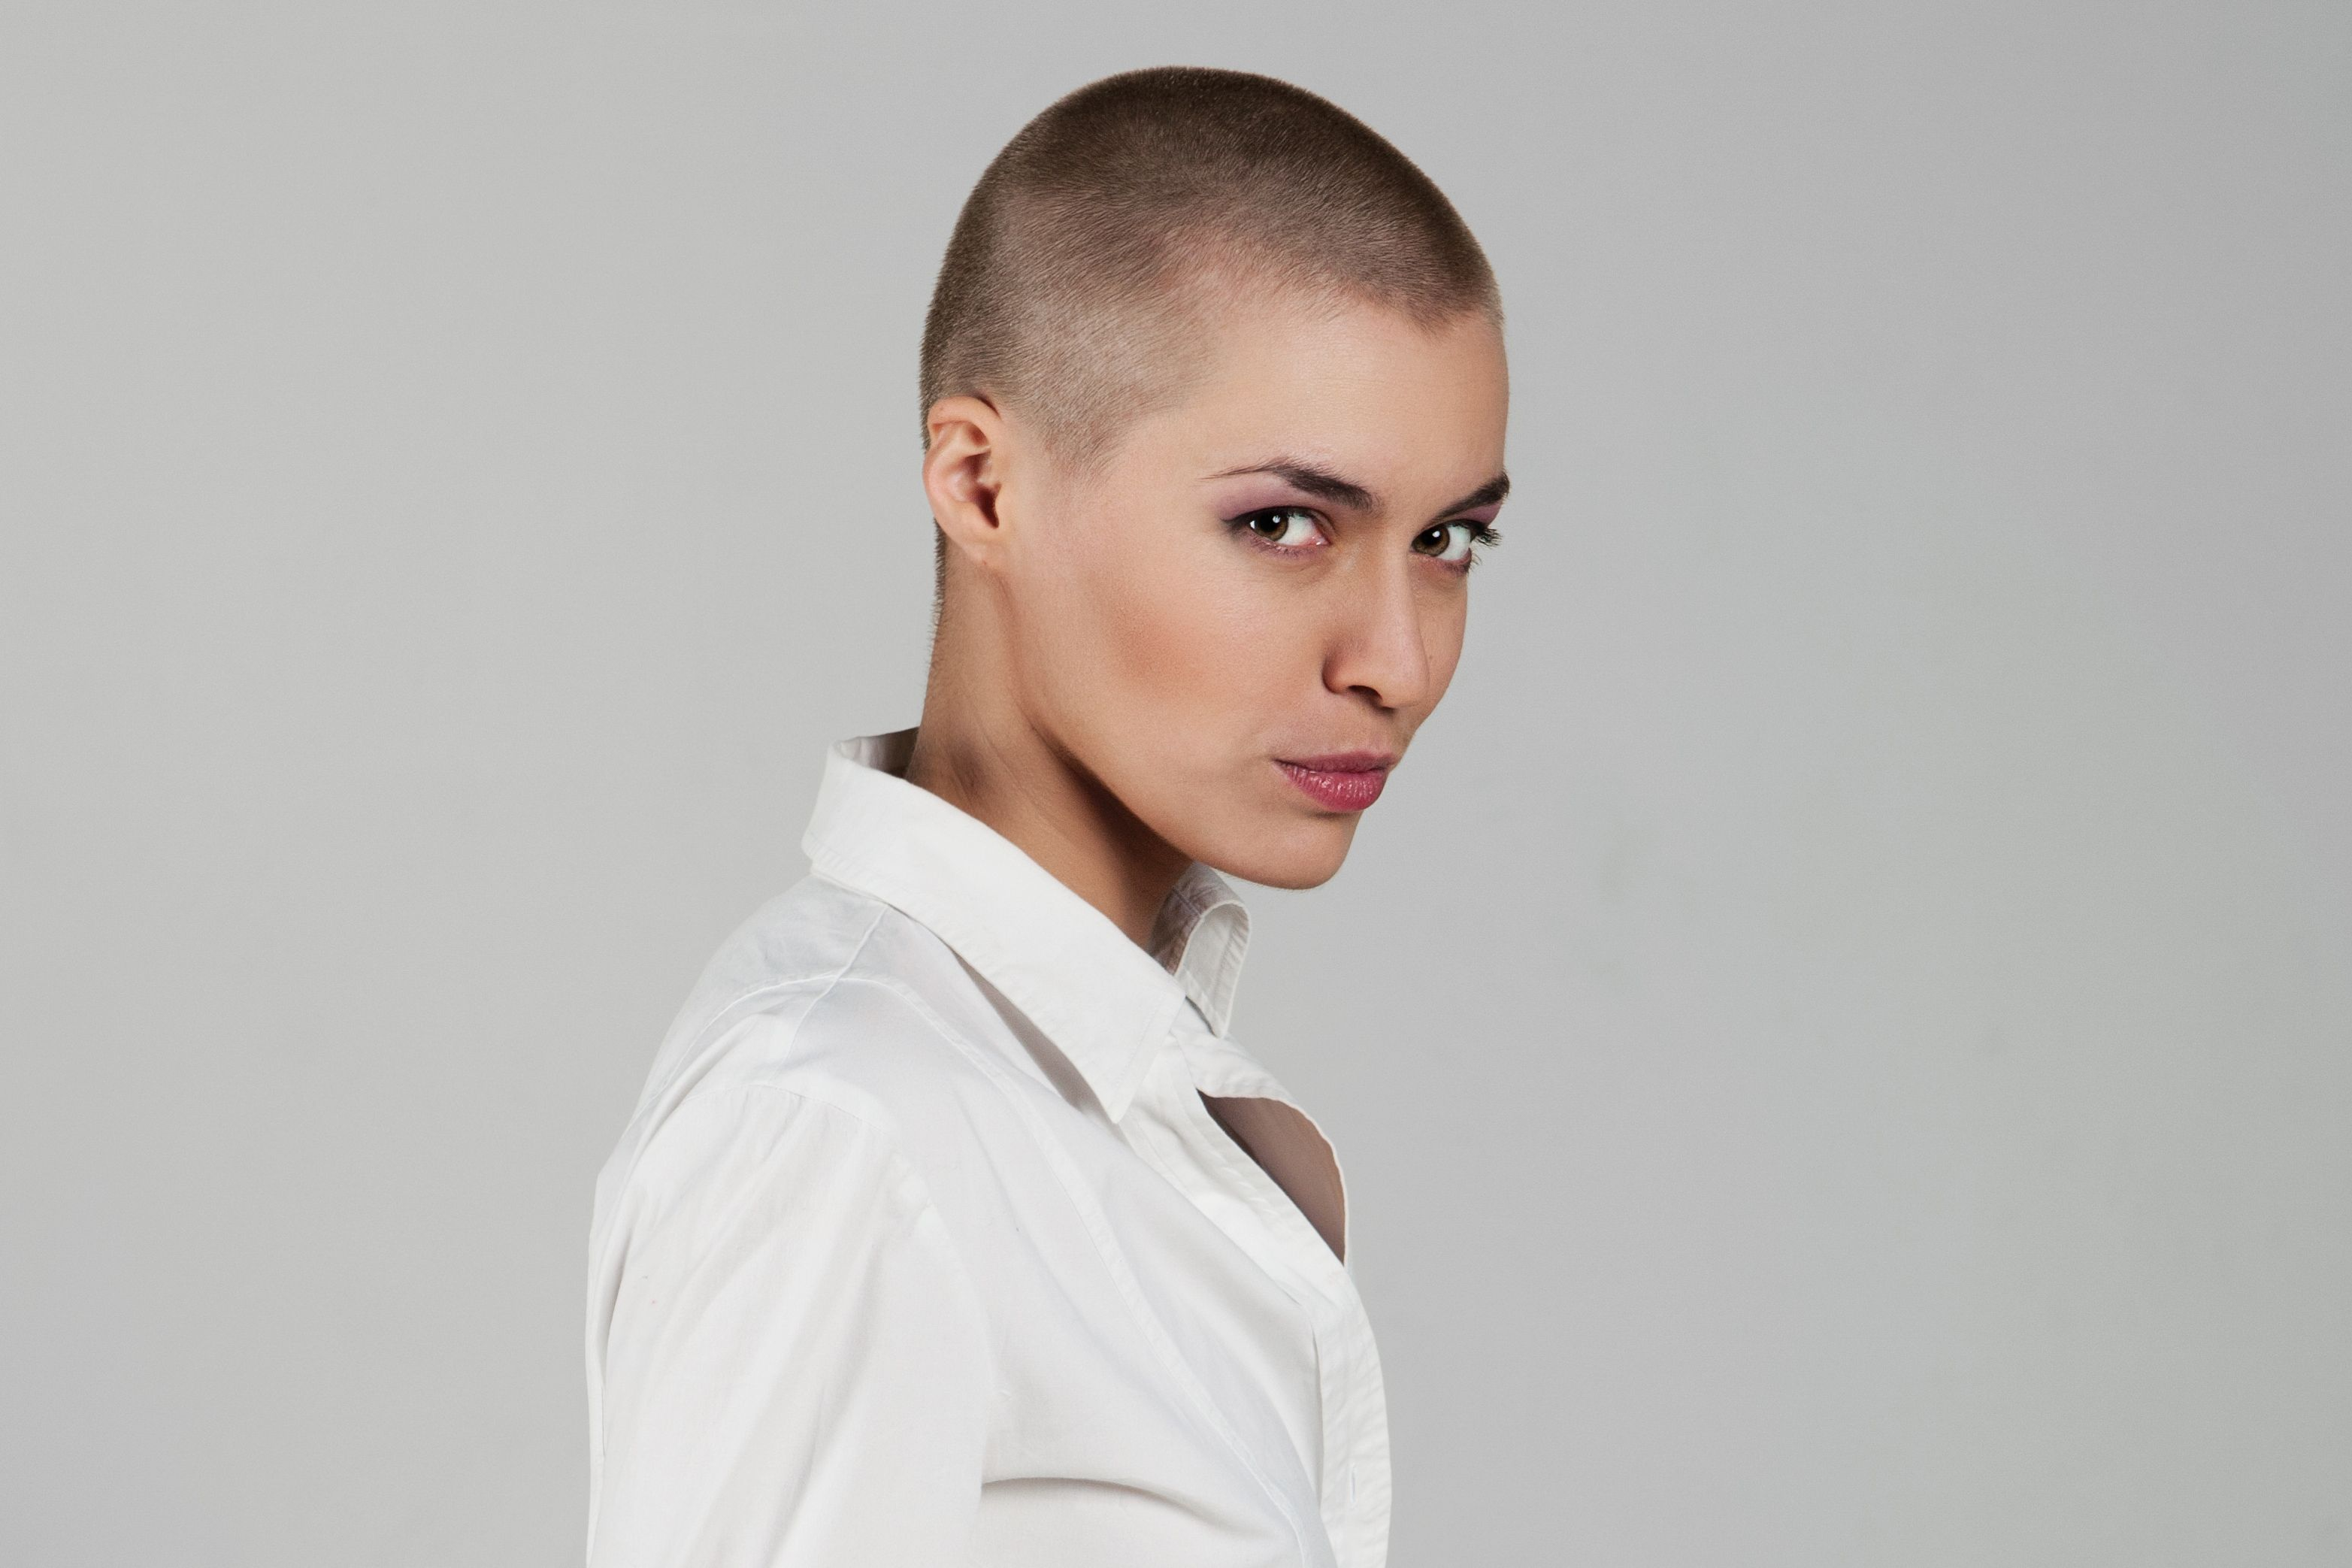 Hairstyles Female Hair Loss Bald Women Styles The Bald And The Beautiful Hair Style